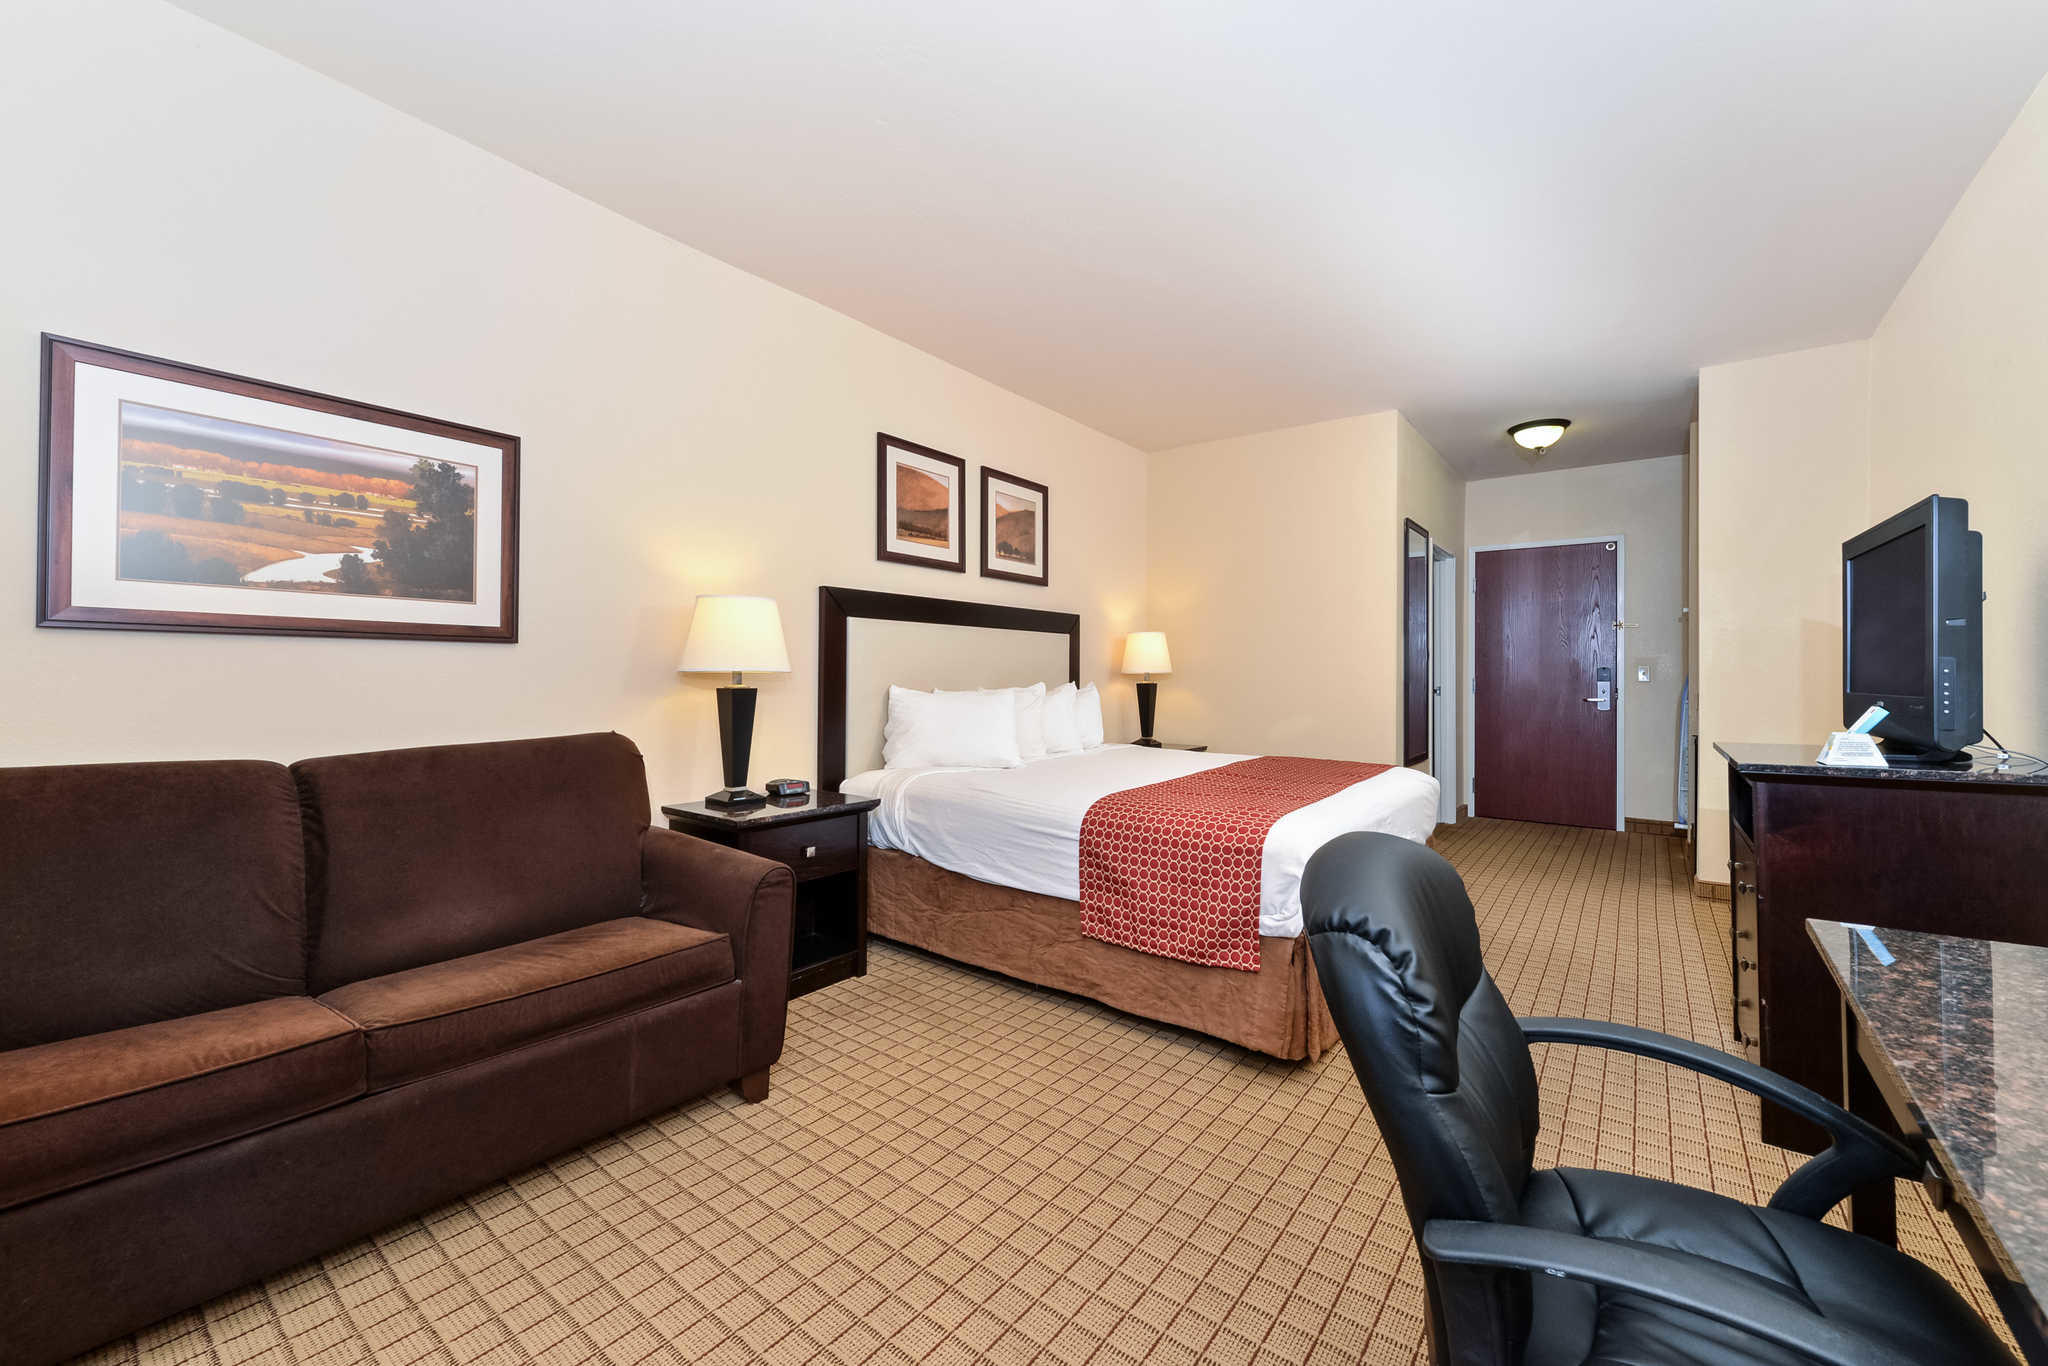 Quality Inn Amp Suites Coupons Near Me In Norman 8coupons